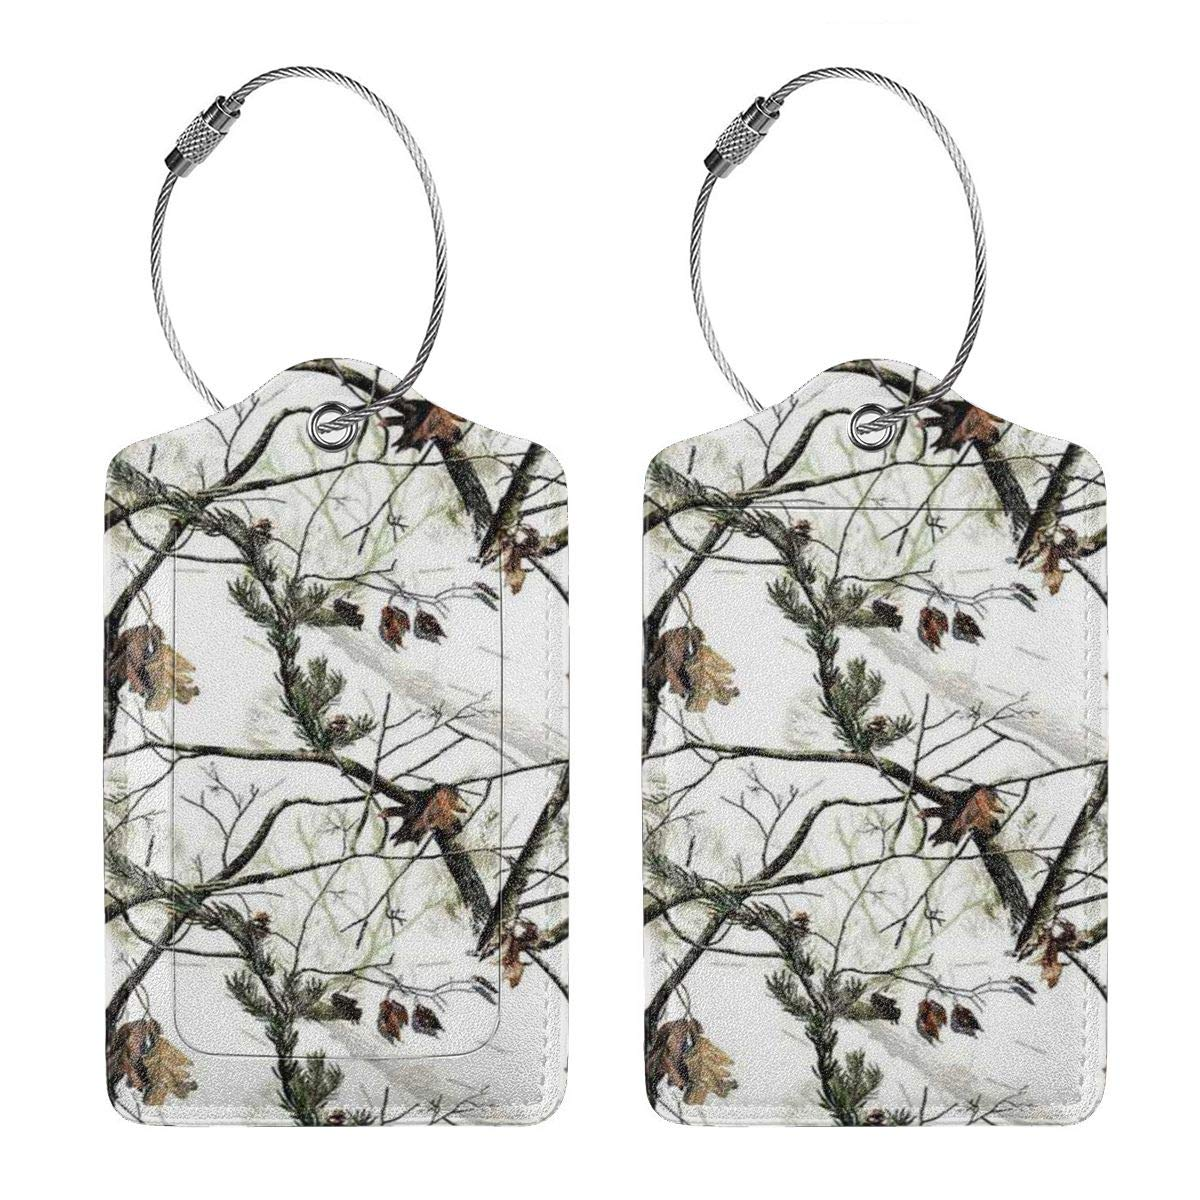 GoldK White Realtree Camo Leather Luggage Tags Baggage Bag Instrument Tag Travel Labels Accessories with Privacy Cover